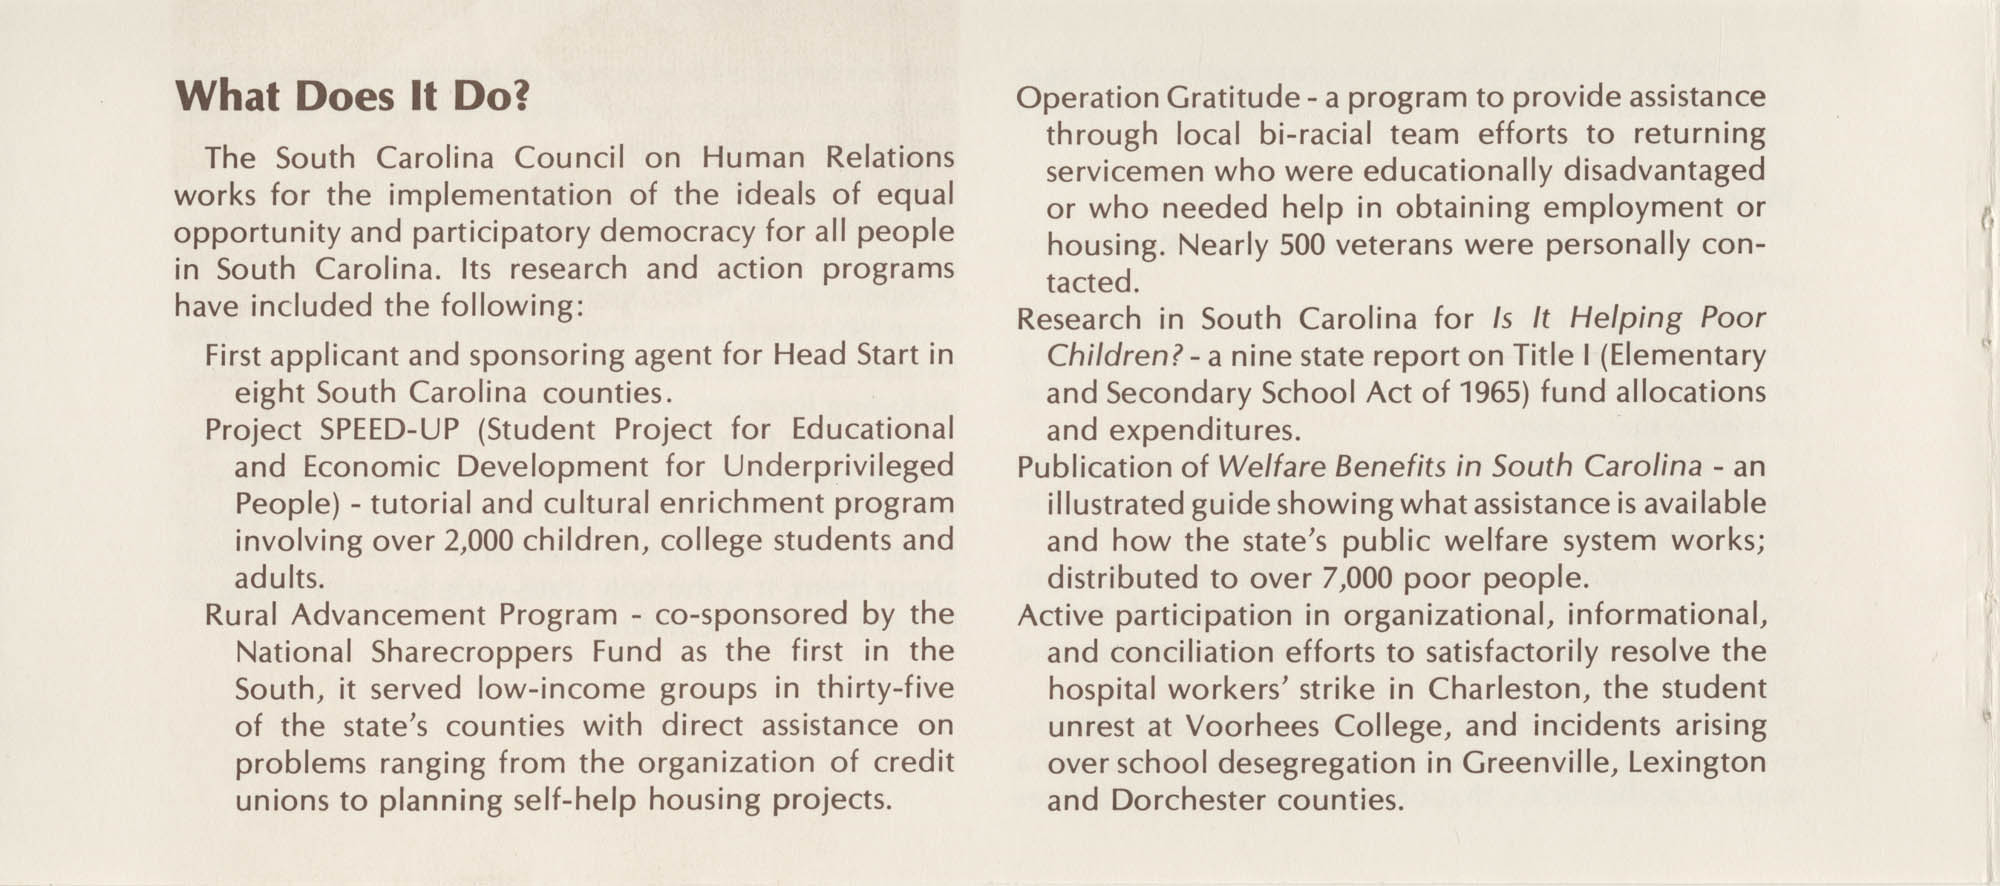 South Carolina Council on Human Relations Pamphlet, Page 3